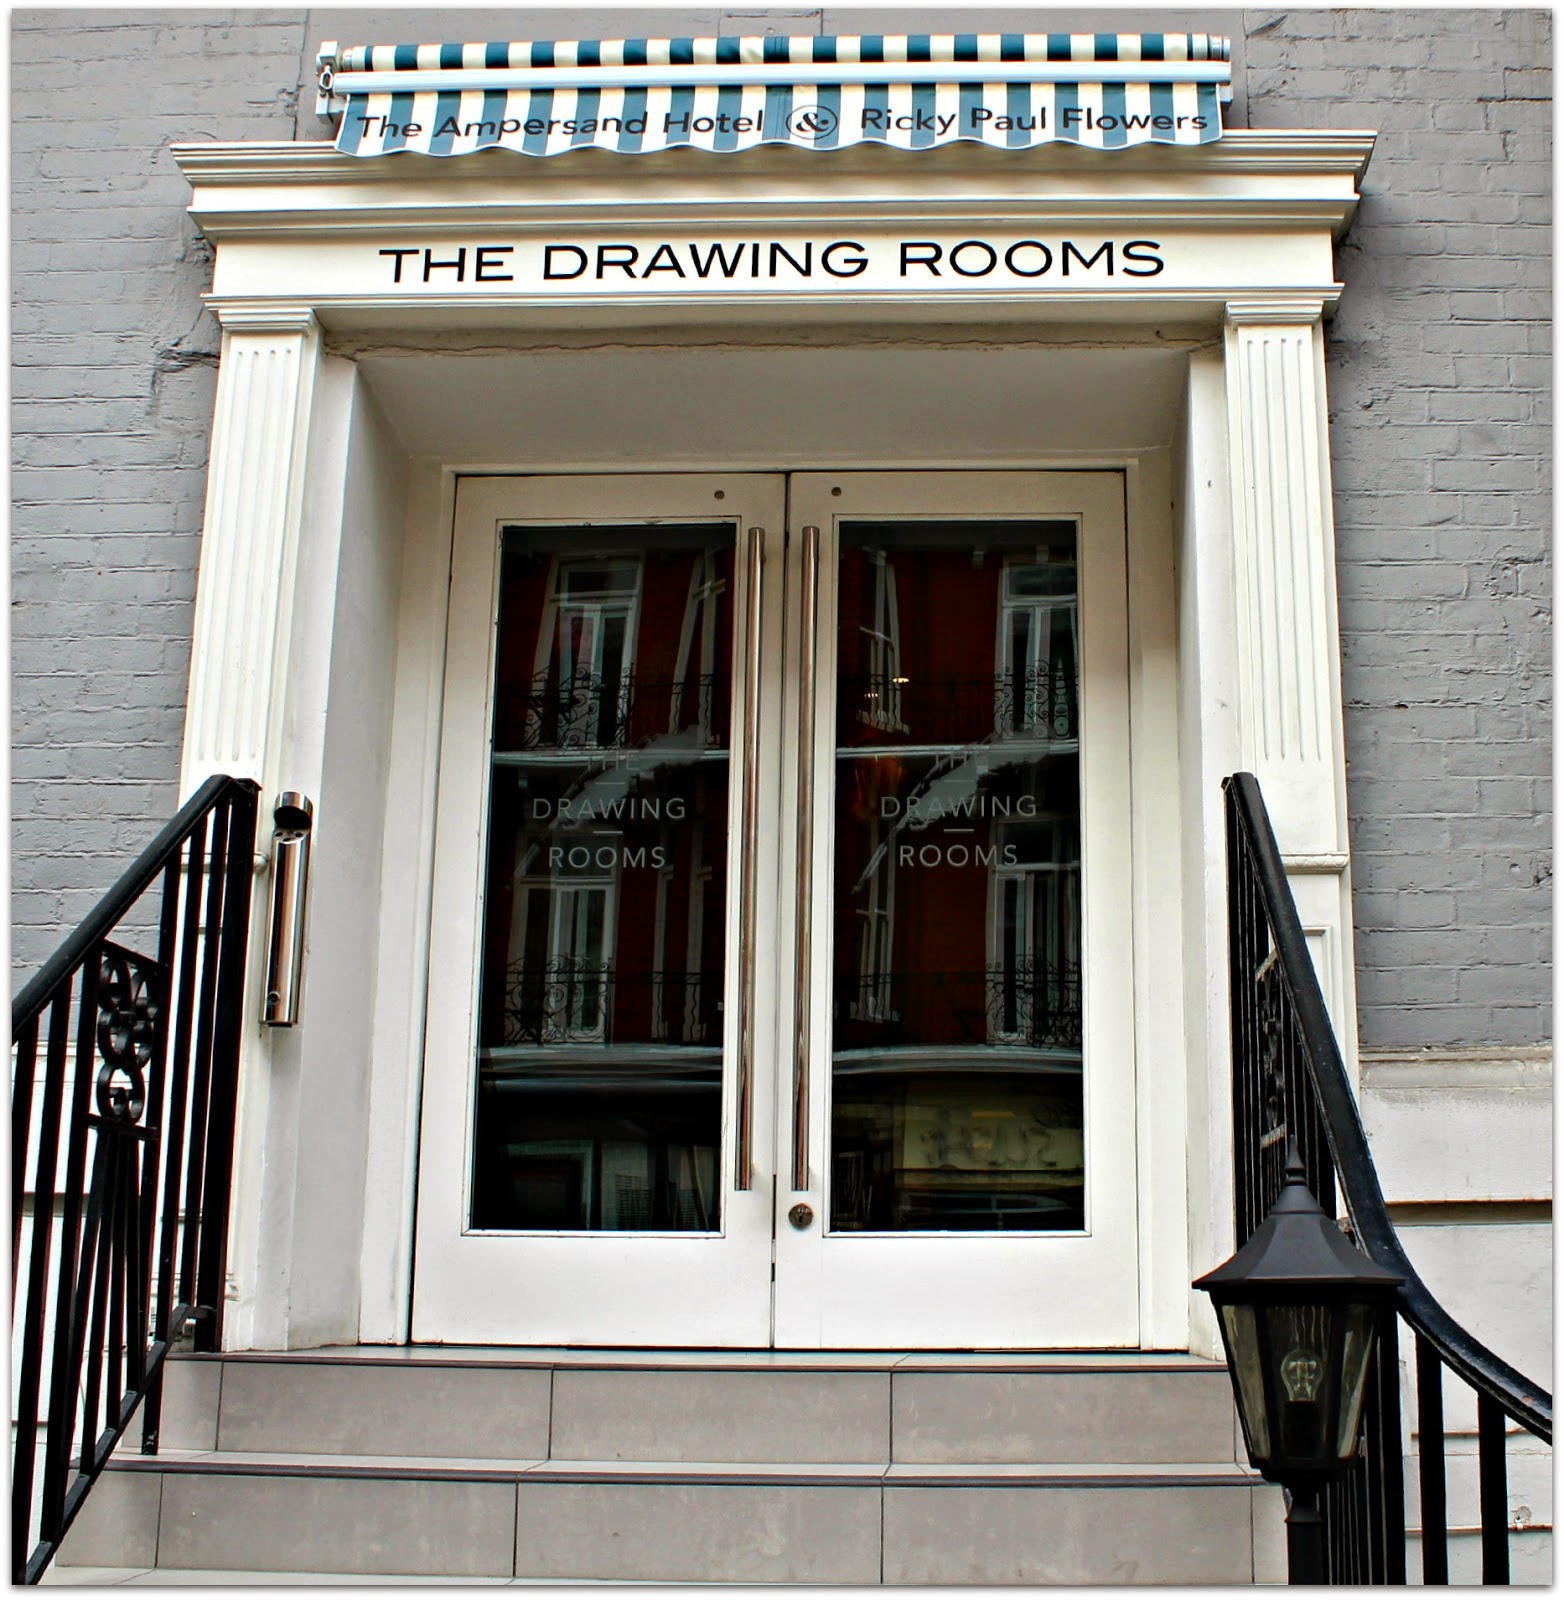 The Drawing Rooms